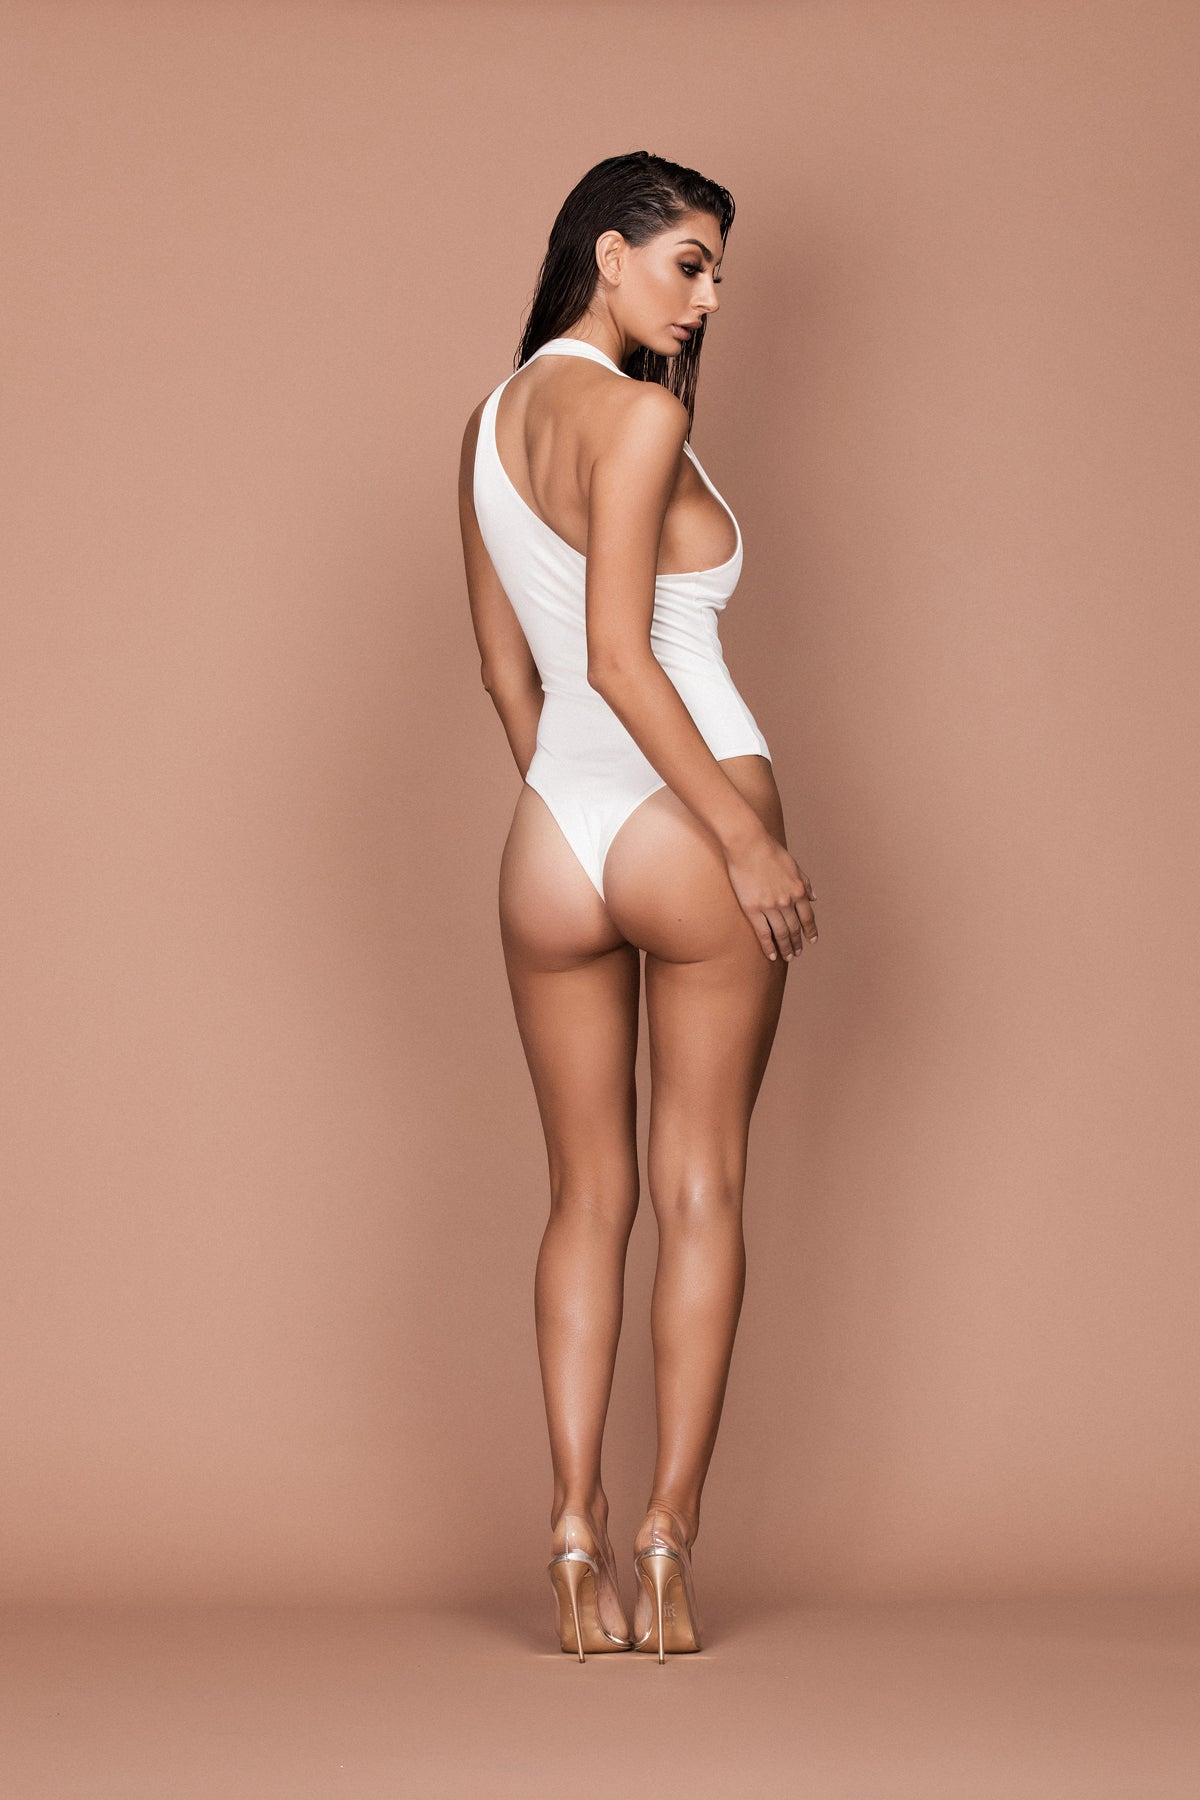 Minx Bodysuit (white) zoomed